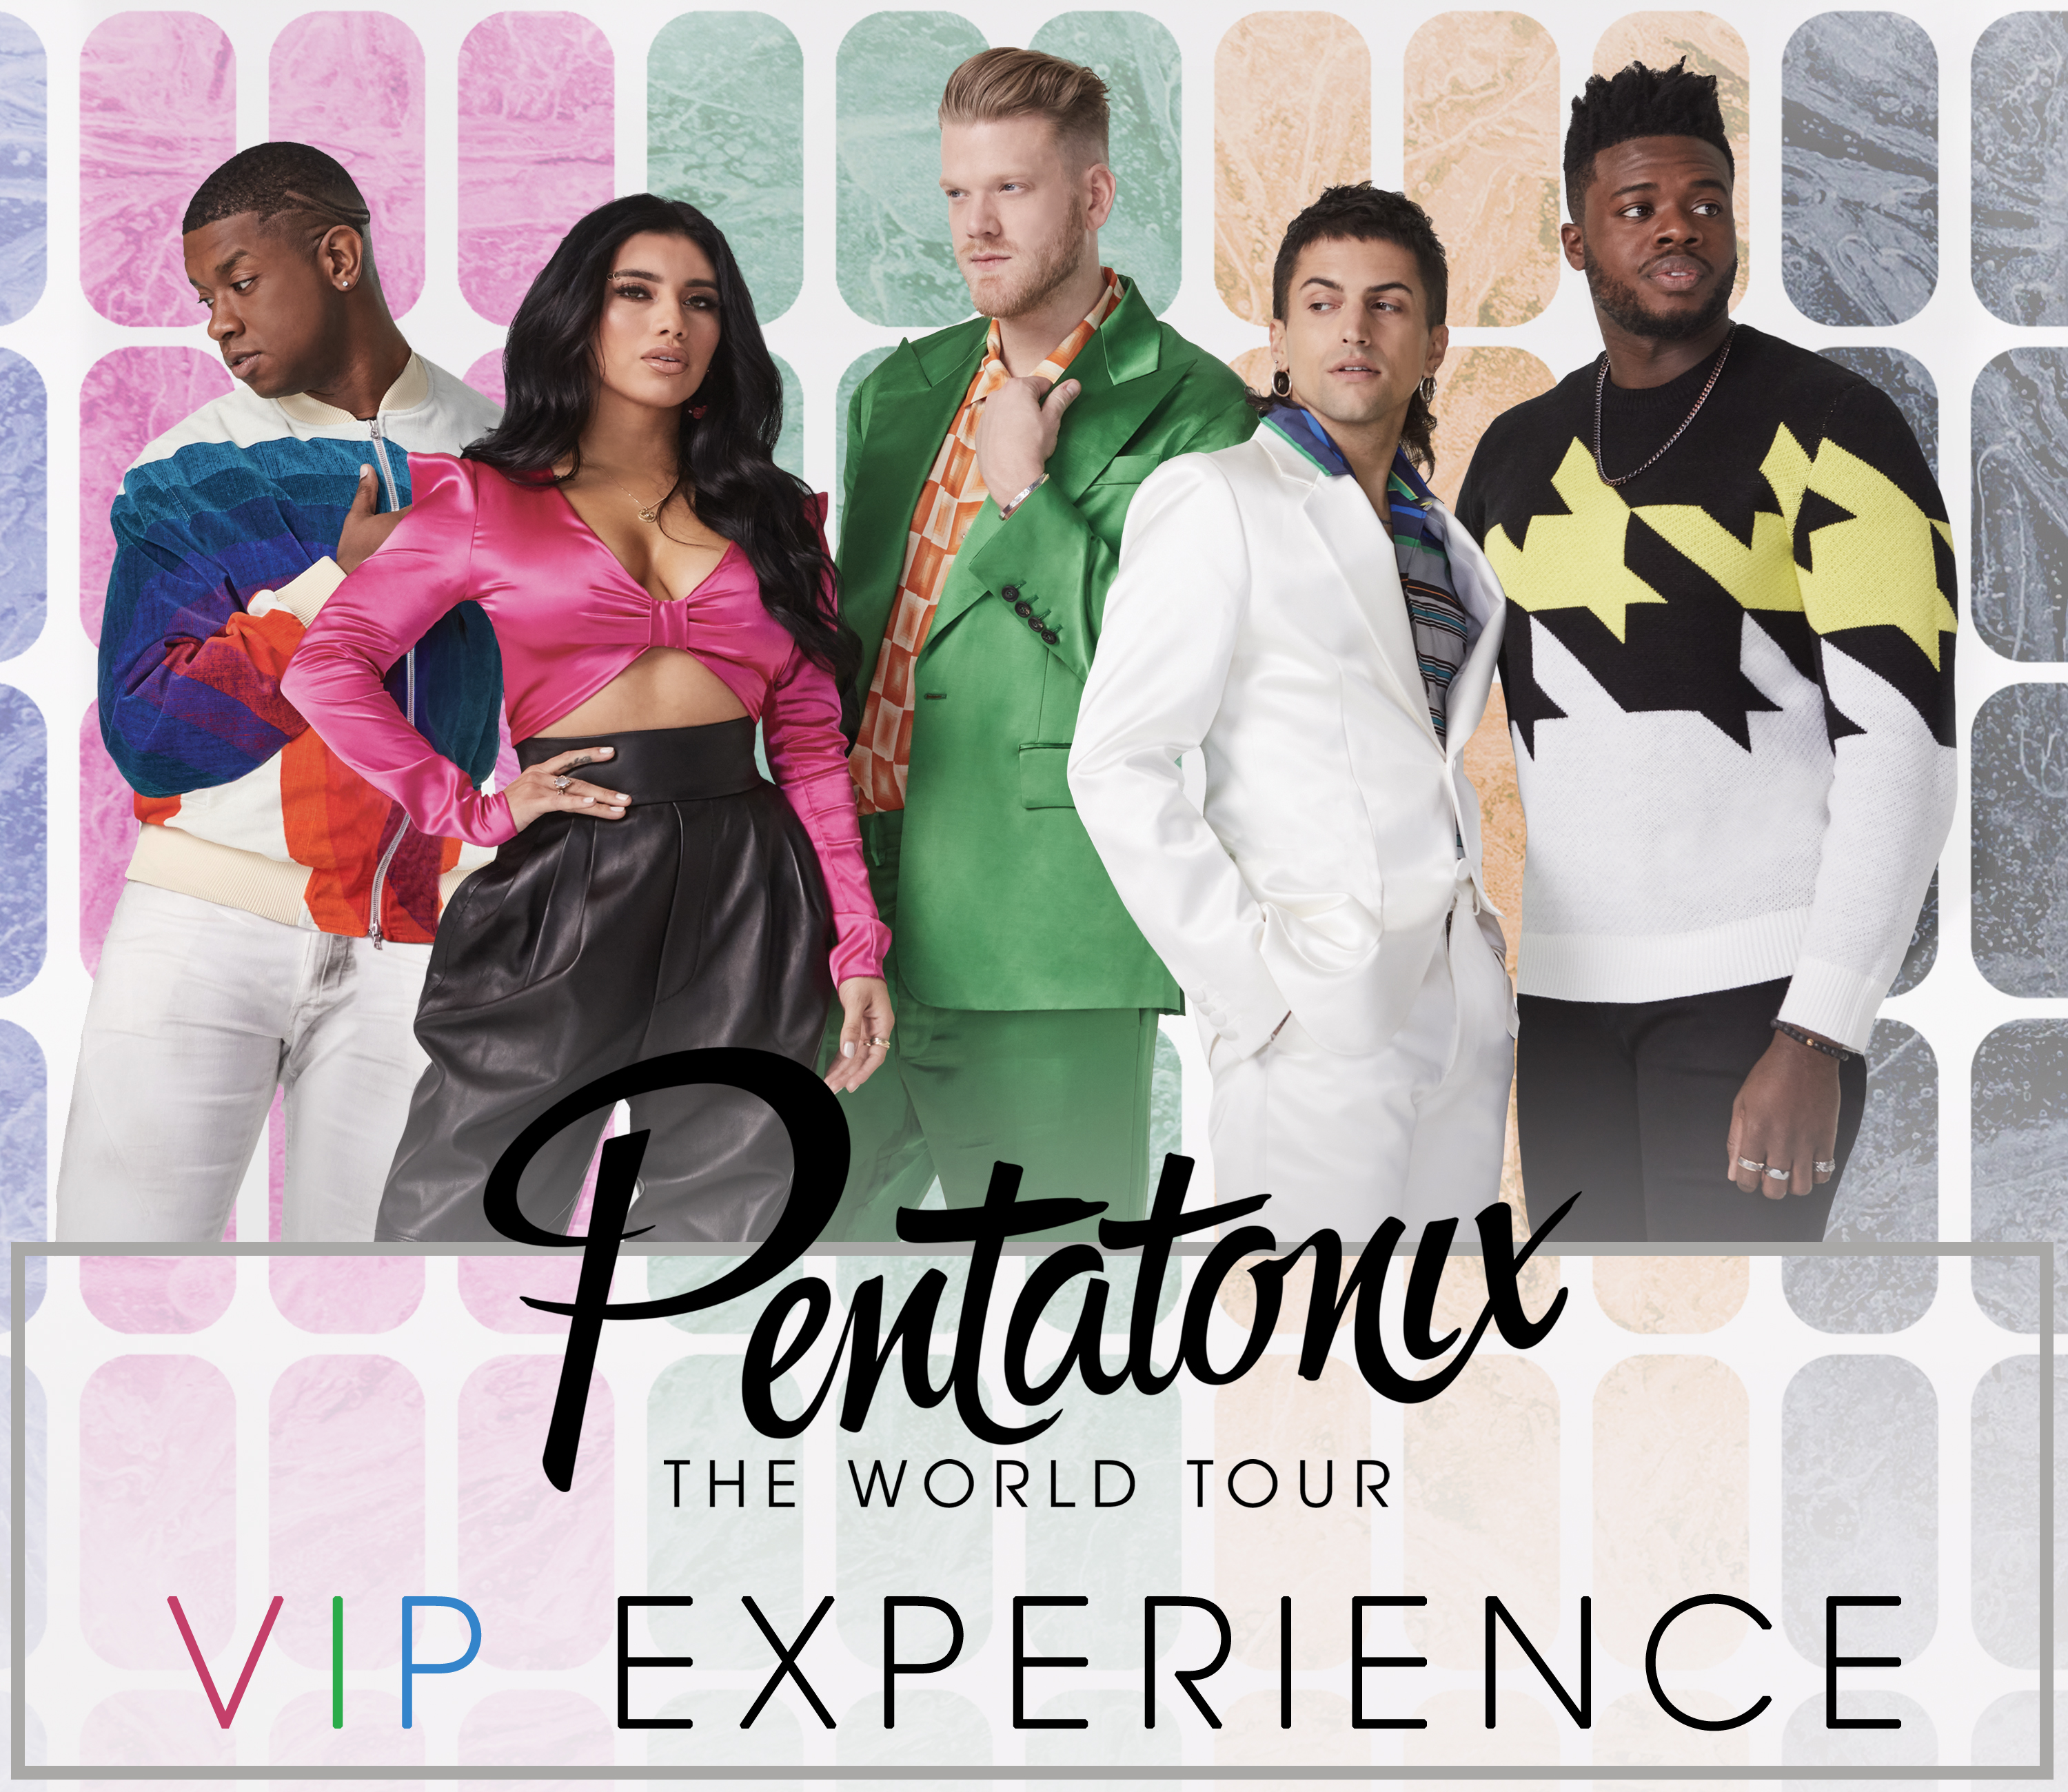 Pentatonix Official Website : Instagram